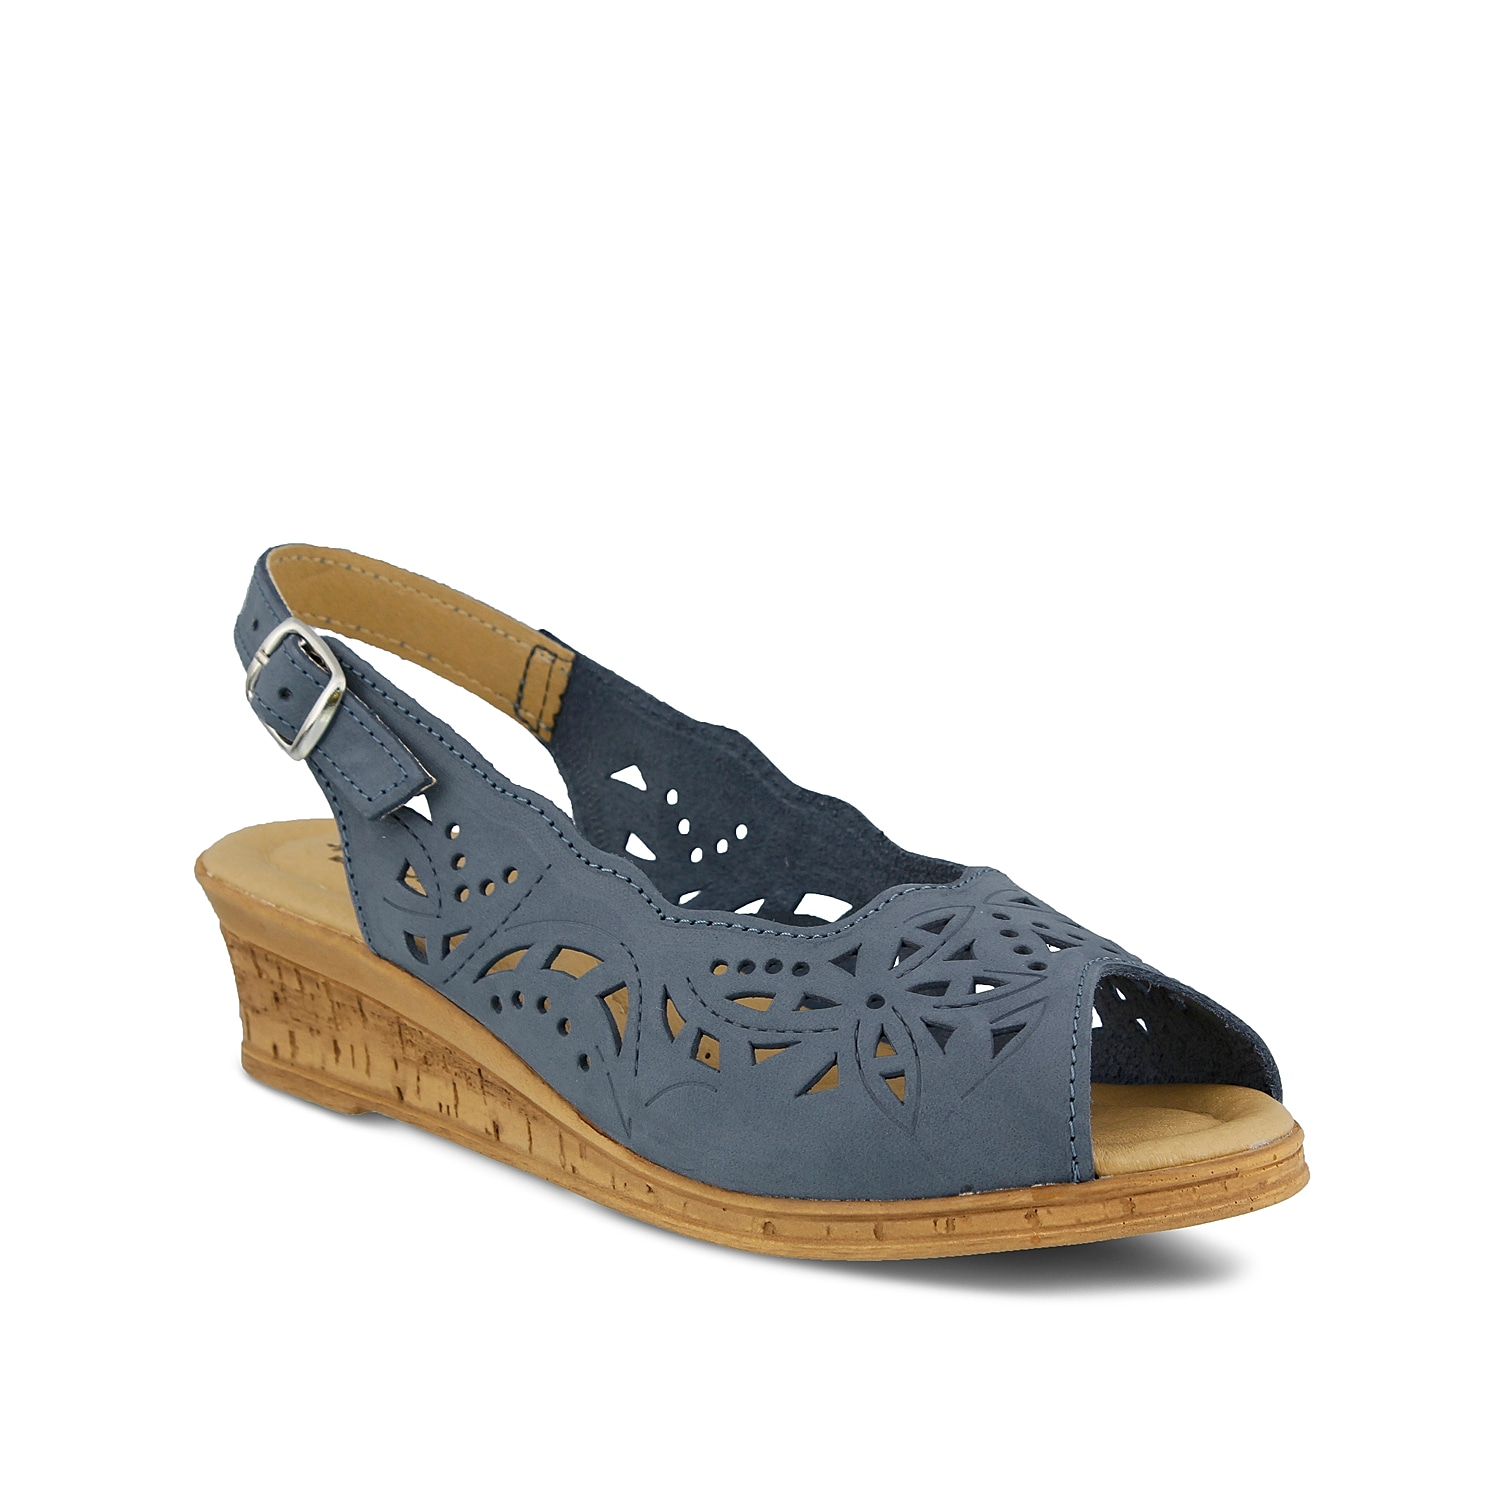 Comfy and casual, the Spring Step Orella wedges are the perfect slingback sandals to pair with all of your warm weather looks. With chic cutouts and a cushioned footbed, these versatile leather sandals are a must-have!